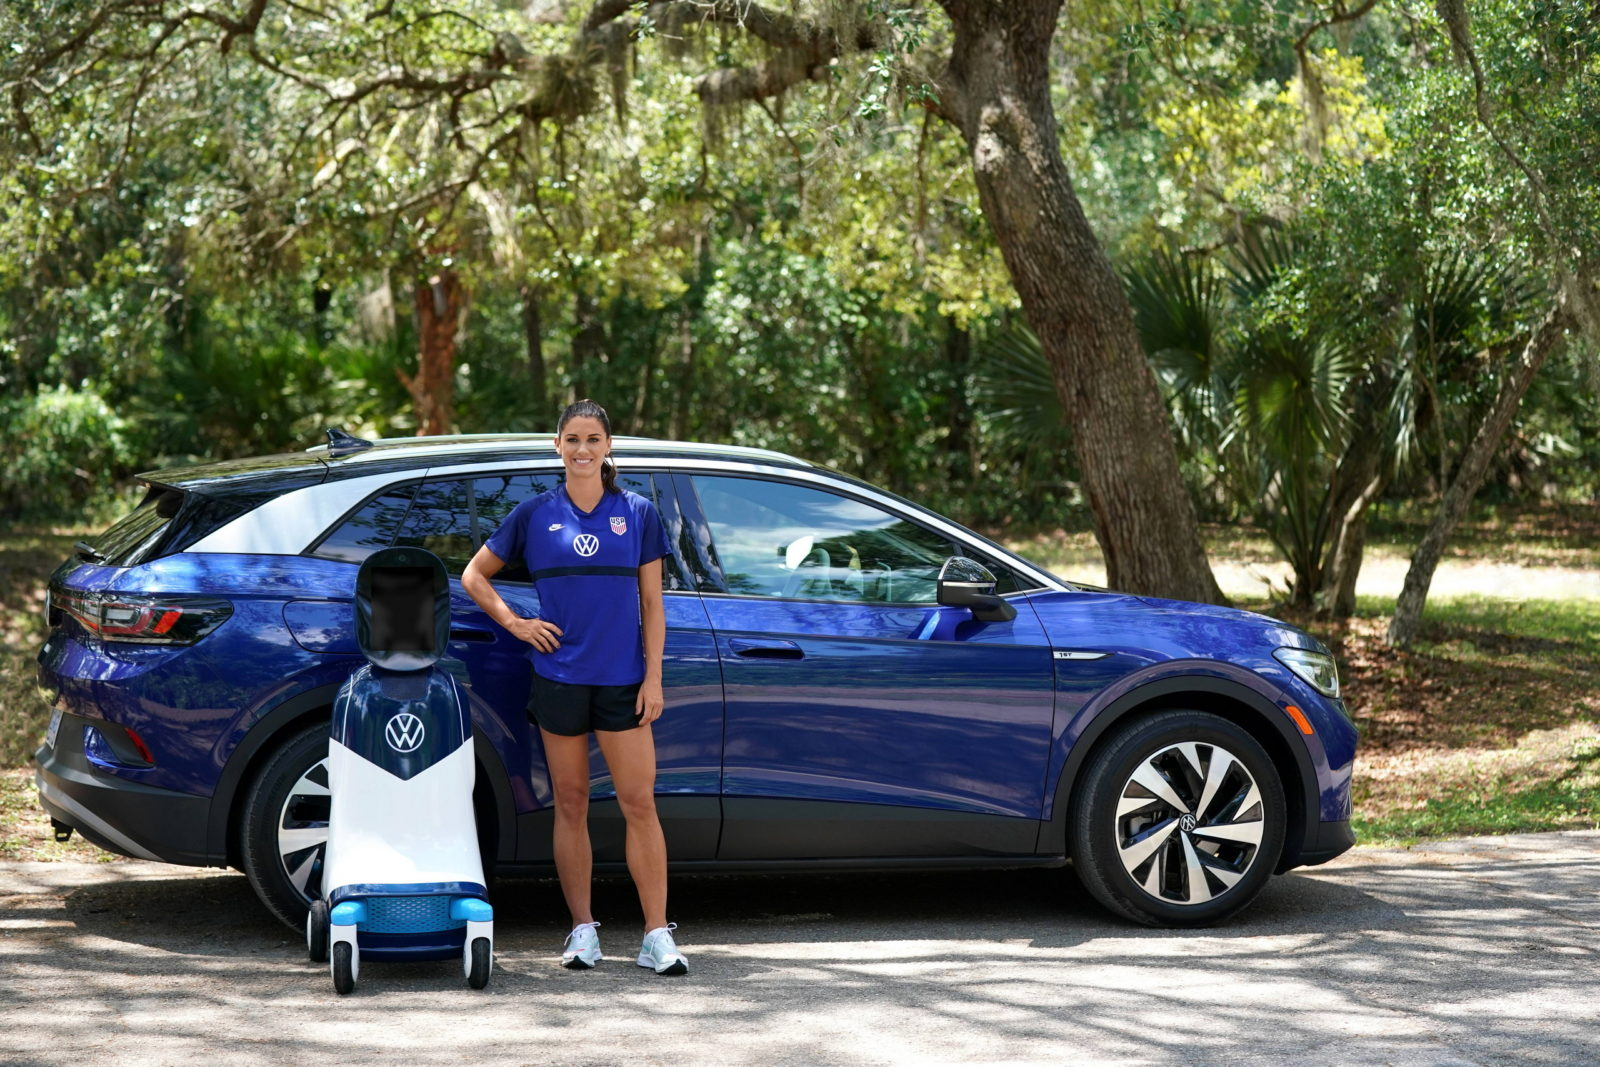 volkswagen-id4-–-inspired-robot-gets-young-soccer-fans-in-the-us.-on-the-field